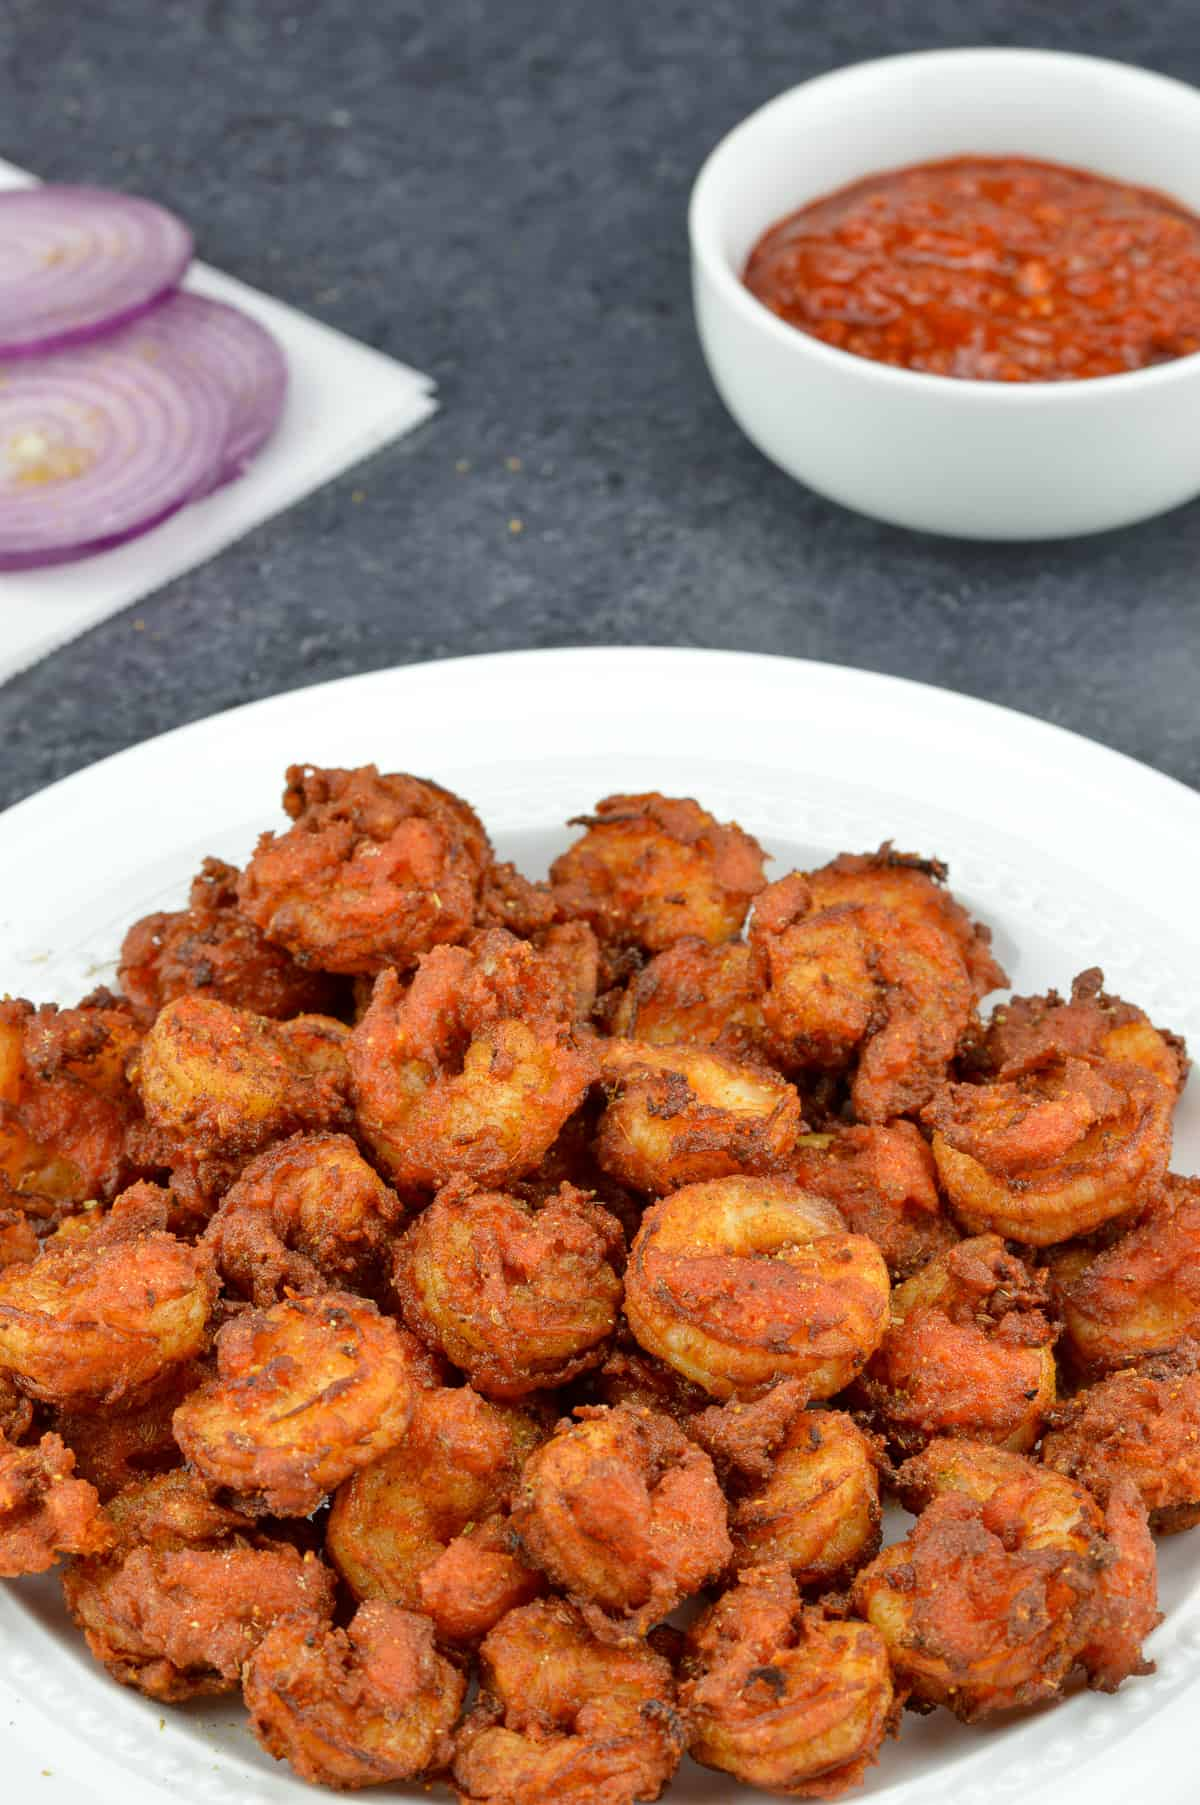 crispy fried prawns koliwada sprinkled with chaat masala, served in a white plate, along with schezwan chutney, and sliced onions in the background